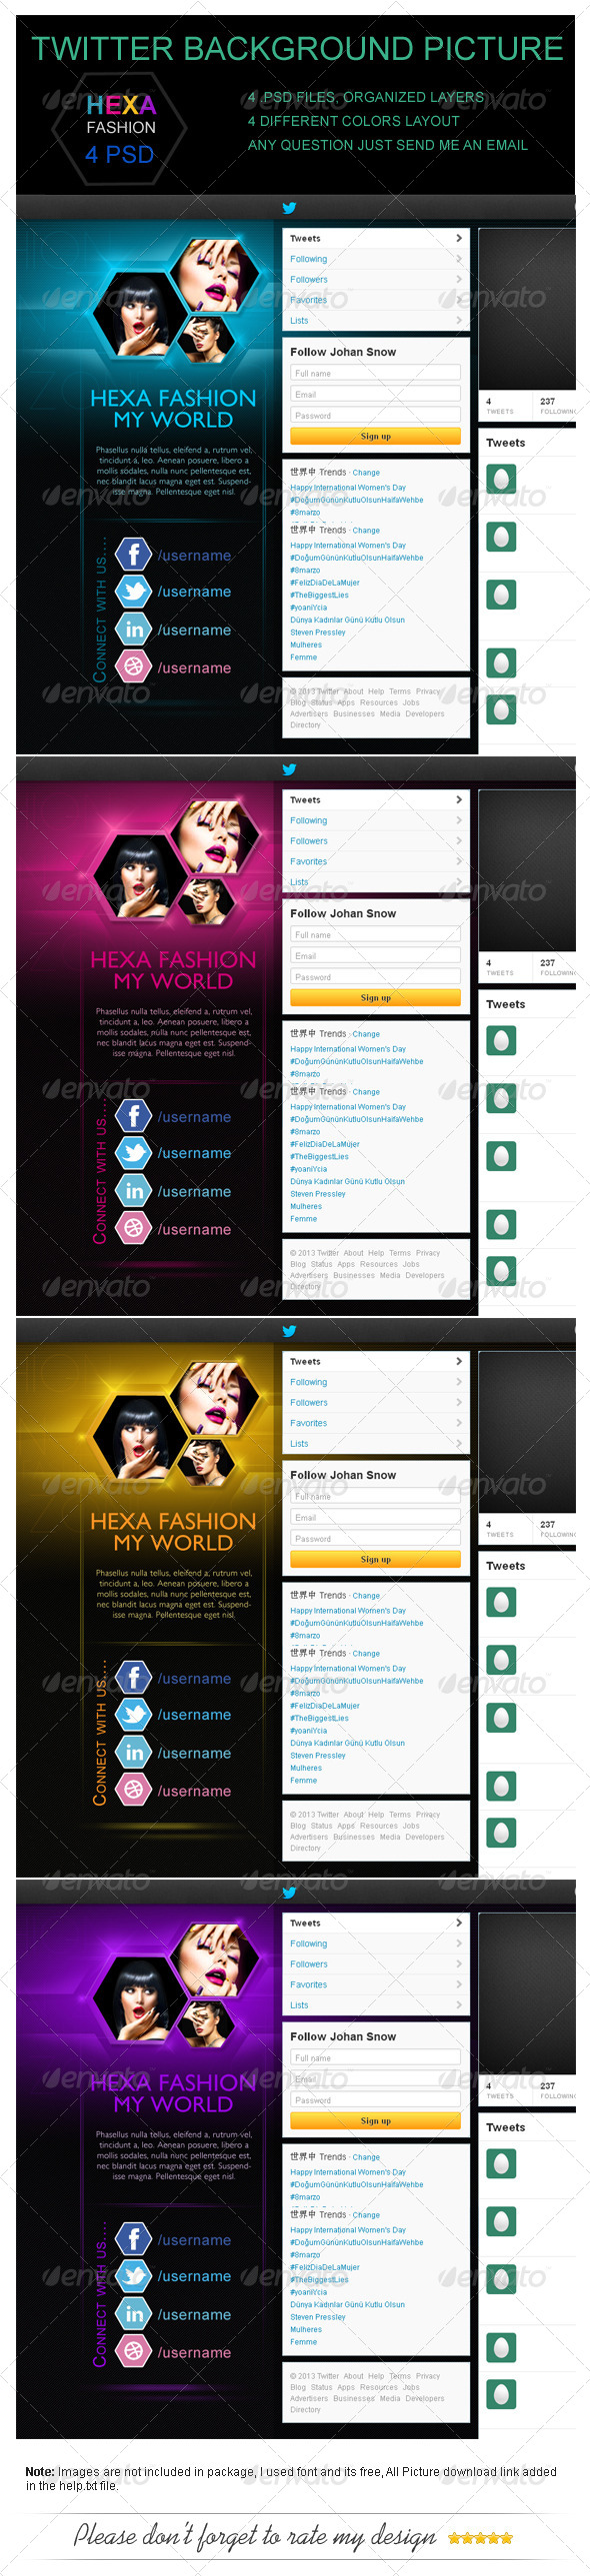 GraphicRiver Hexa Fashion Twitter Background Picture 4354700